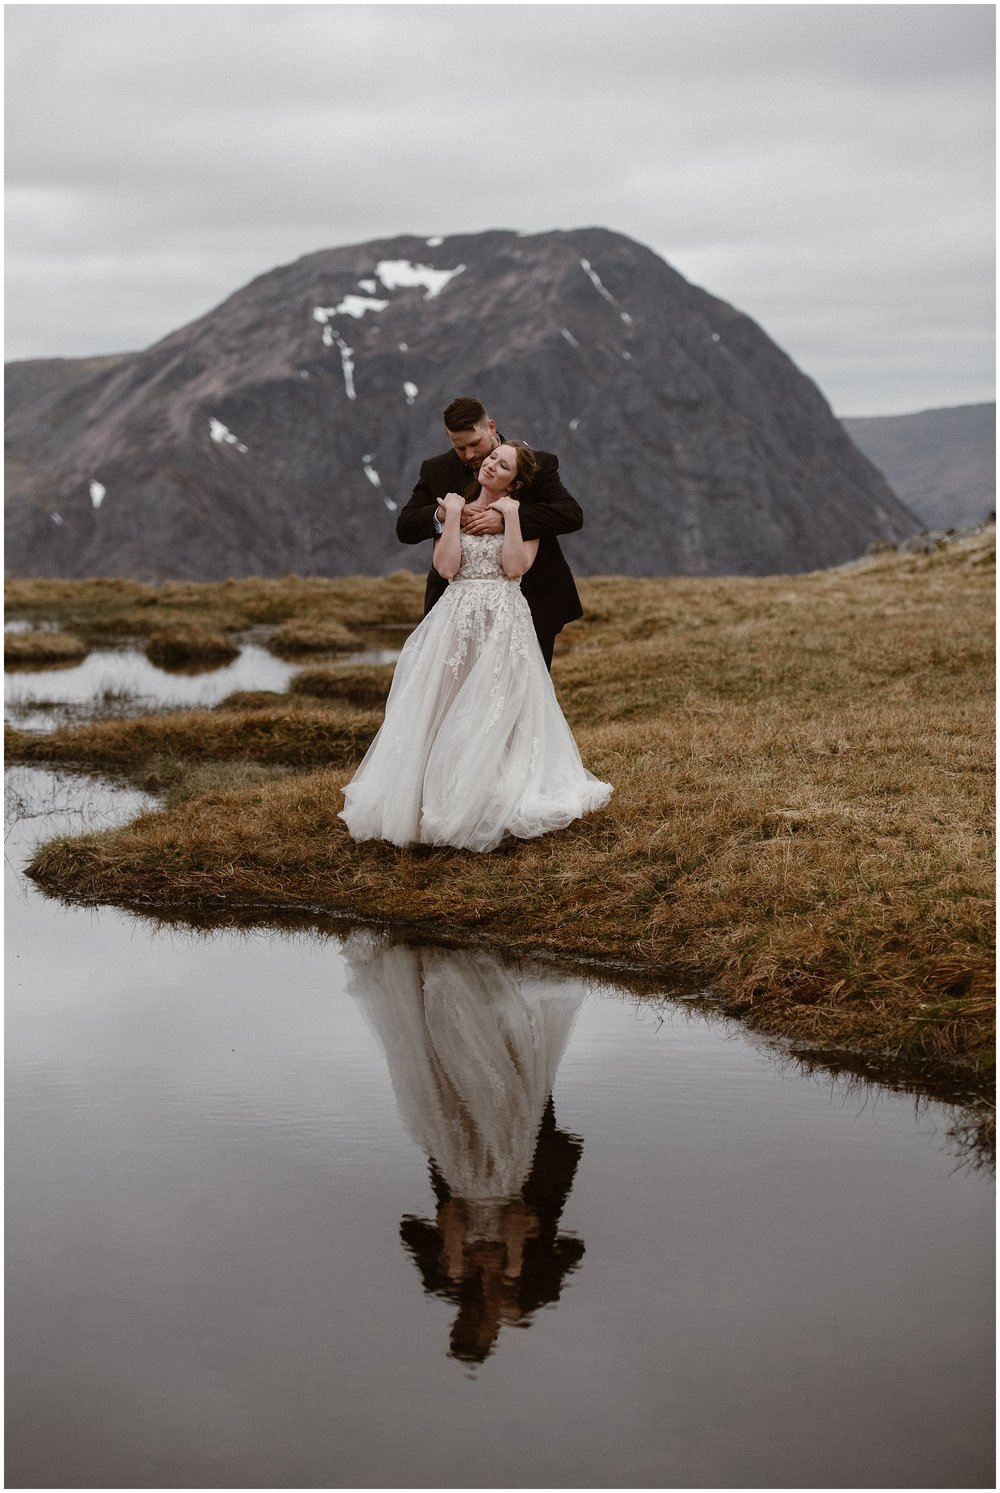 A bride and groom hold each other close at the edge of a dark, but beautiful lake, In the lake below them, the reflection of the bride and groom embracing can be seen. Behind them, a large, dome-shaped mountain can be seen. These elopement photos were captured by elopement wedding photographer Adventure Instead.